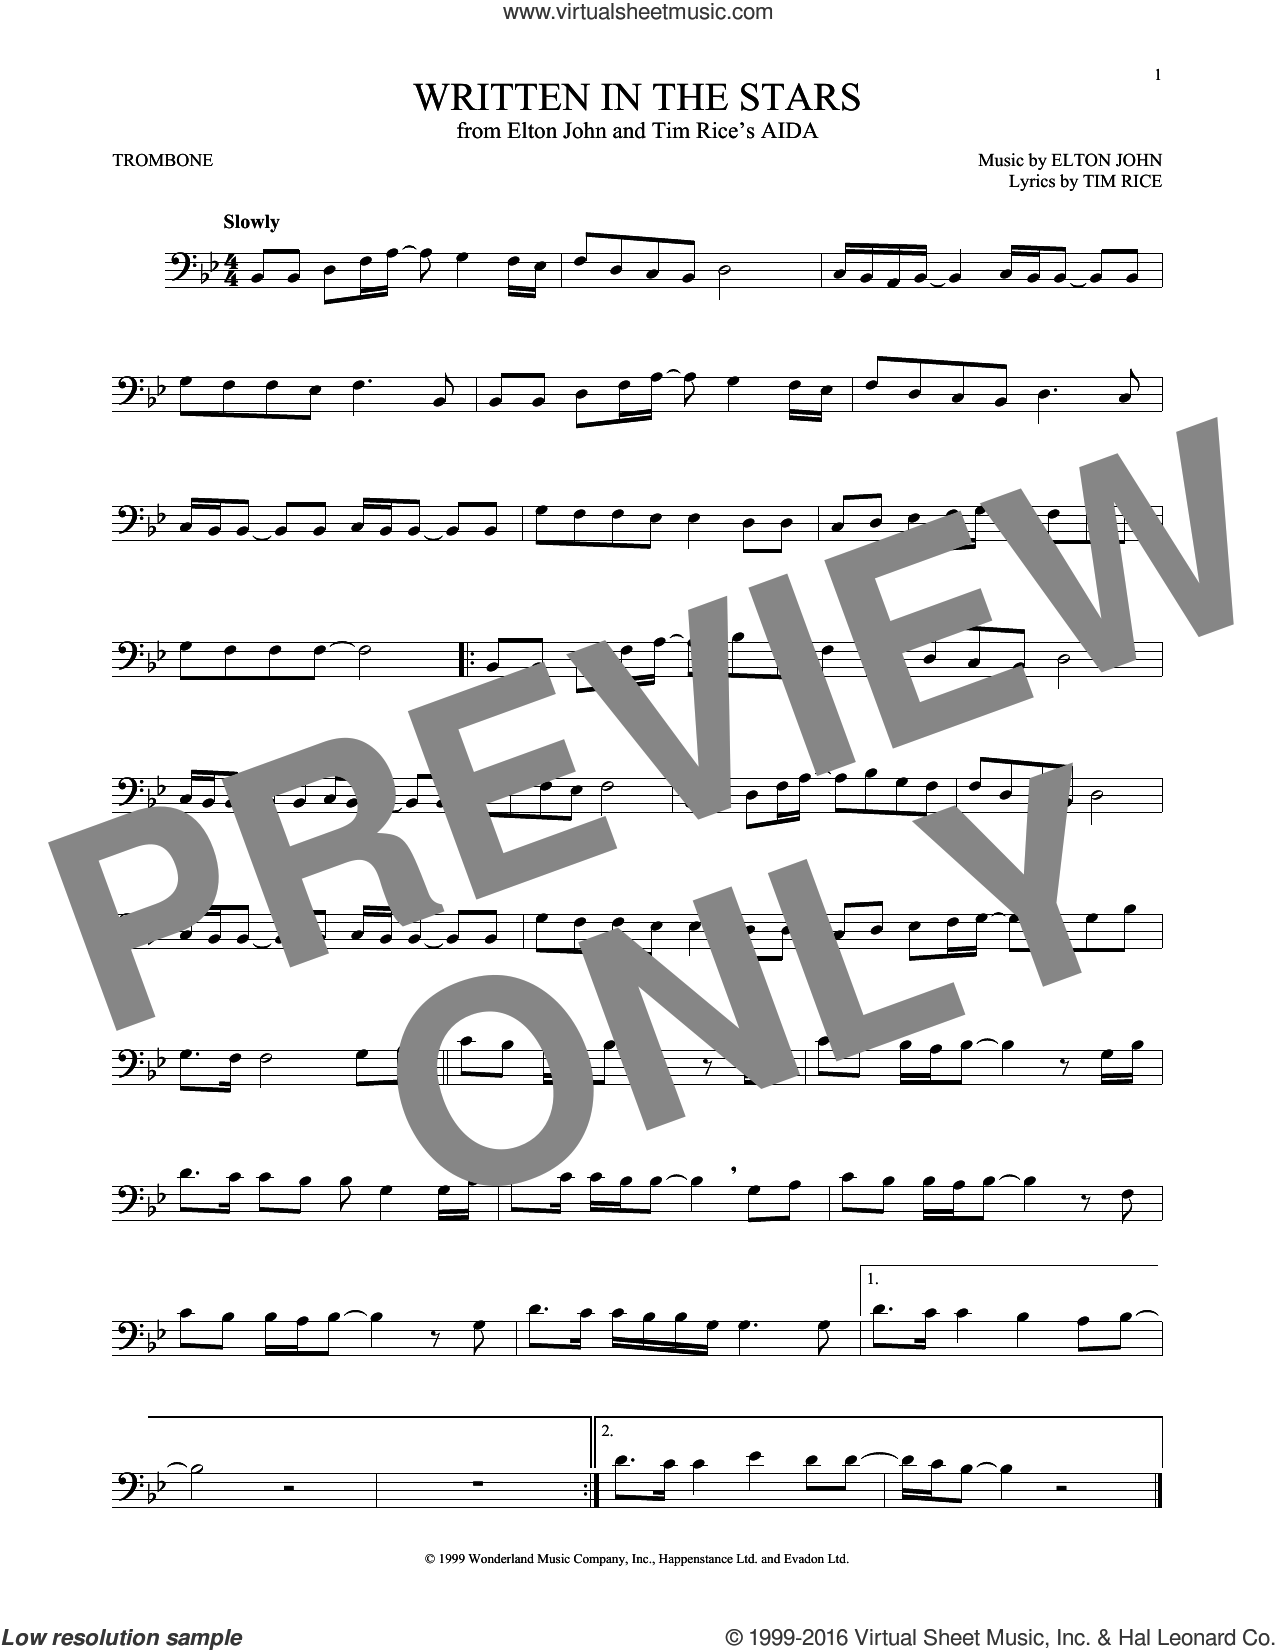 Written In The Stars sheet music for trombone solo by Elton John and Tim Rice, intermediate skill level